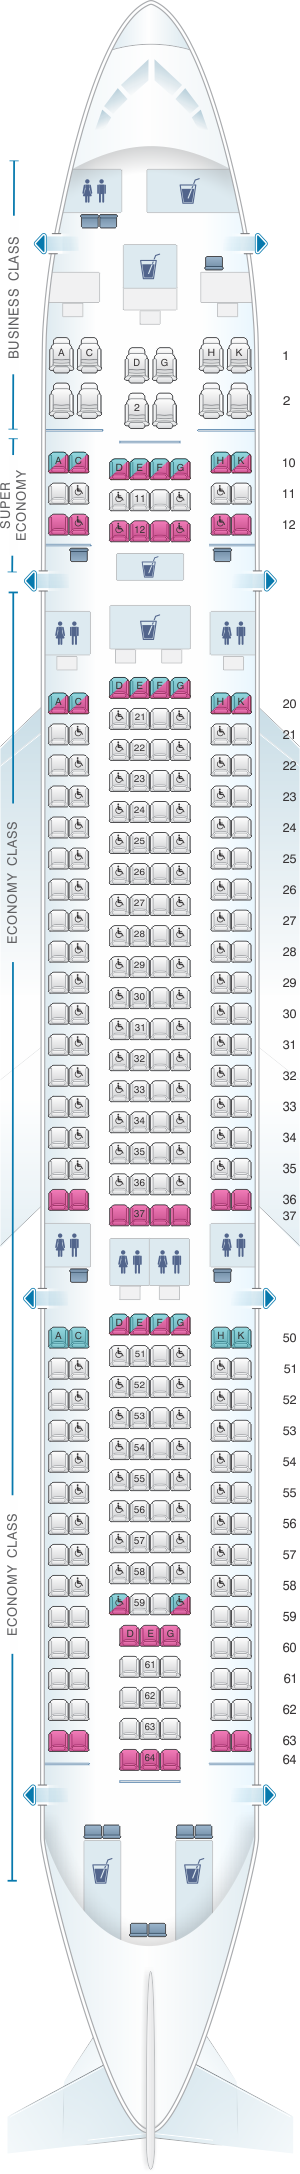 Seat map for SriLankan Airlines Airbus A330-200 Config. 2